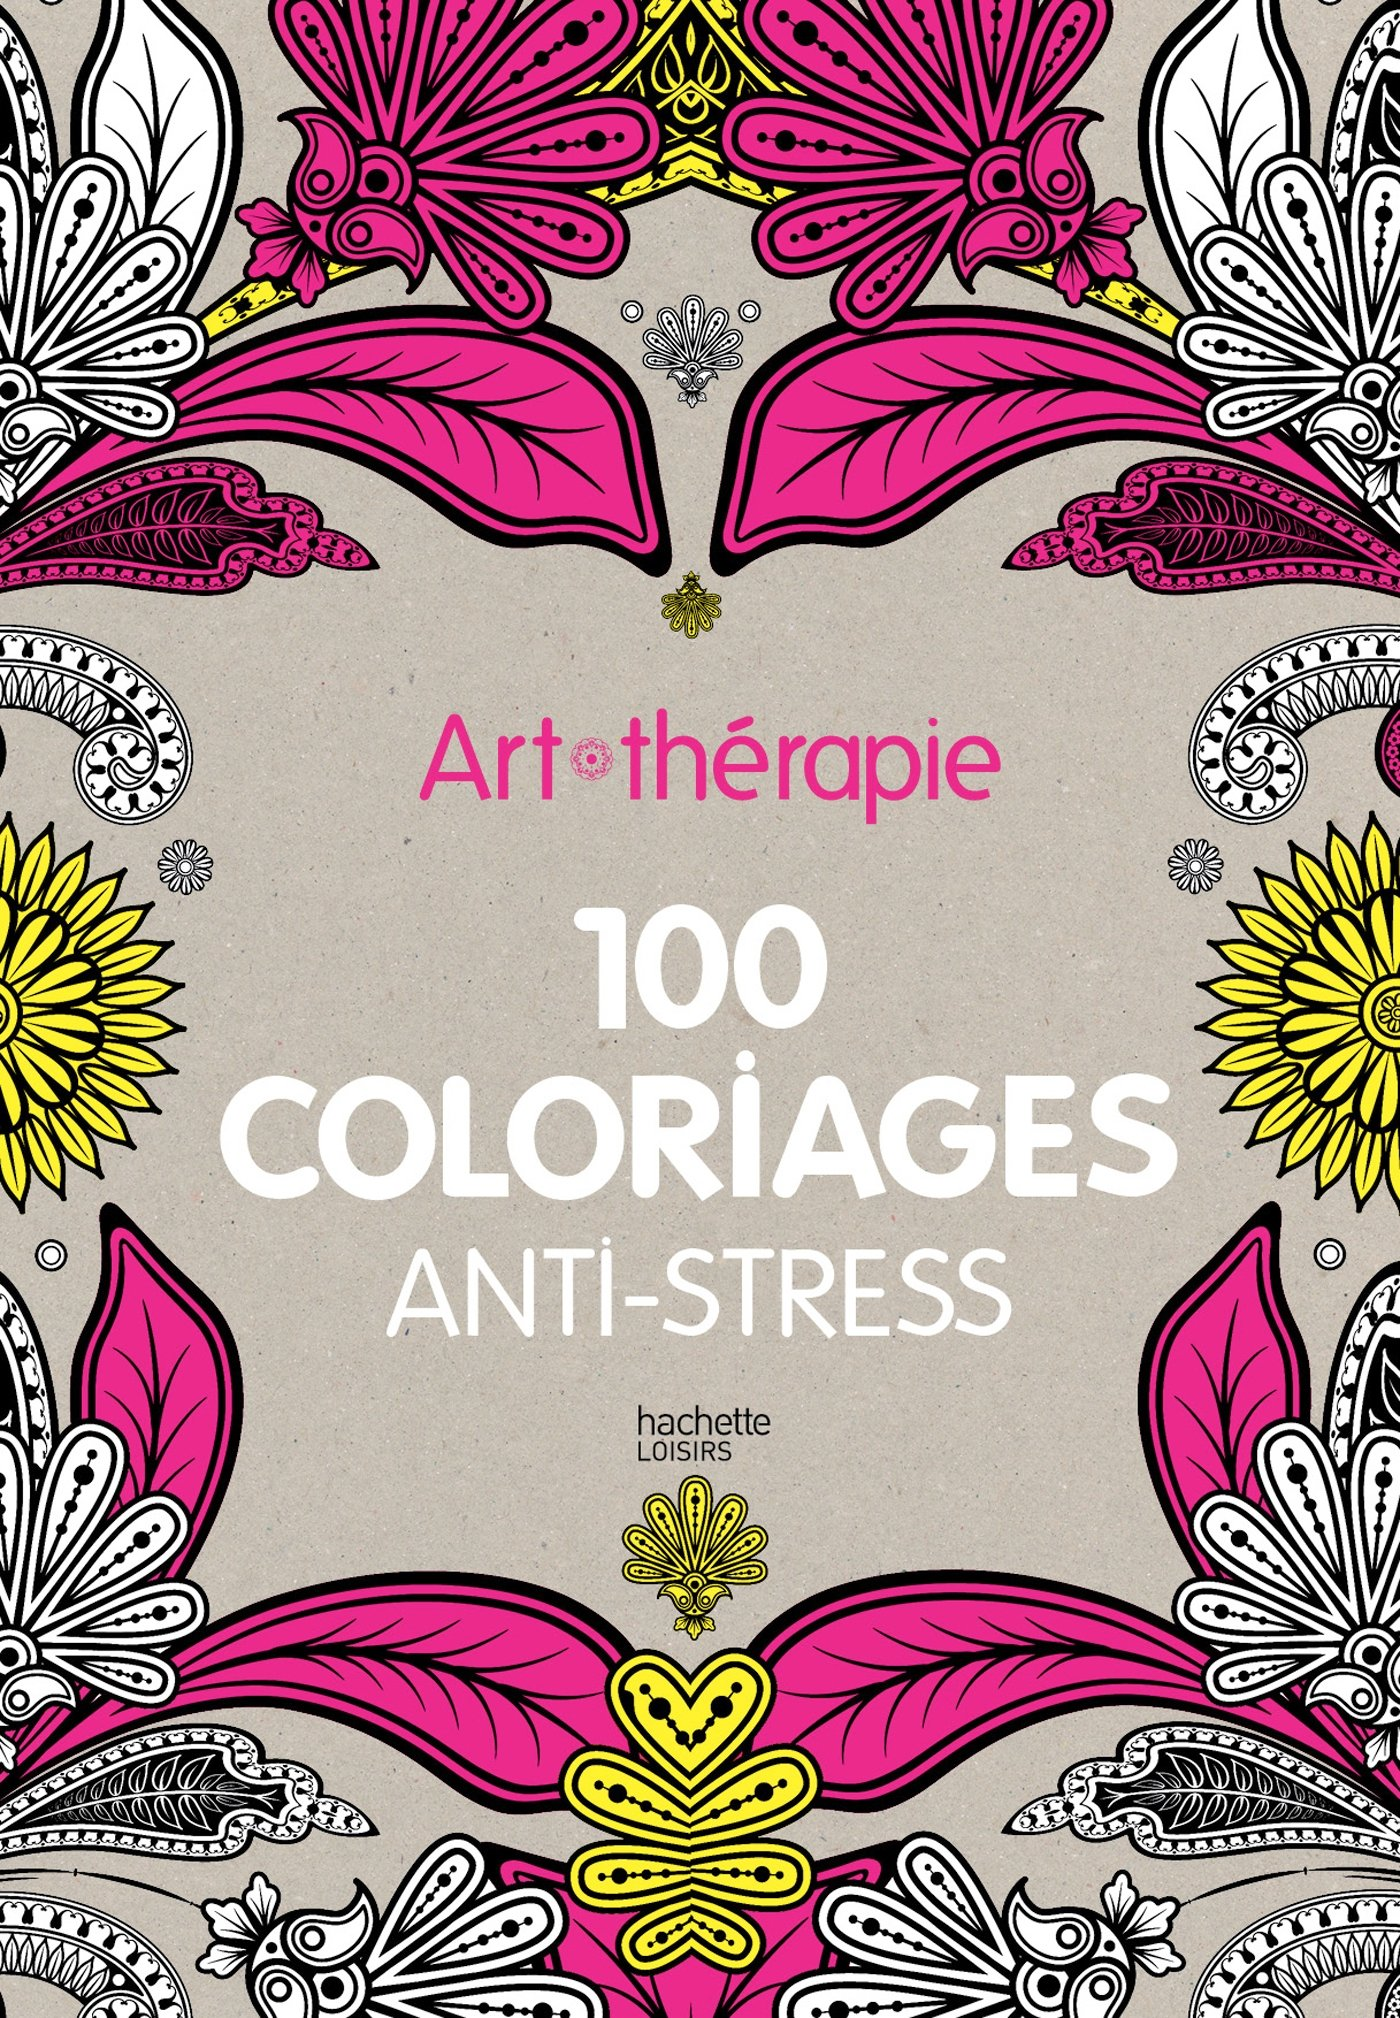 Art thearapie 100 coloriages anti stress French Edition Collectif Amazon Books